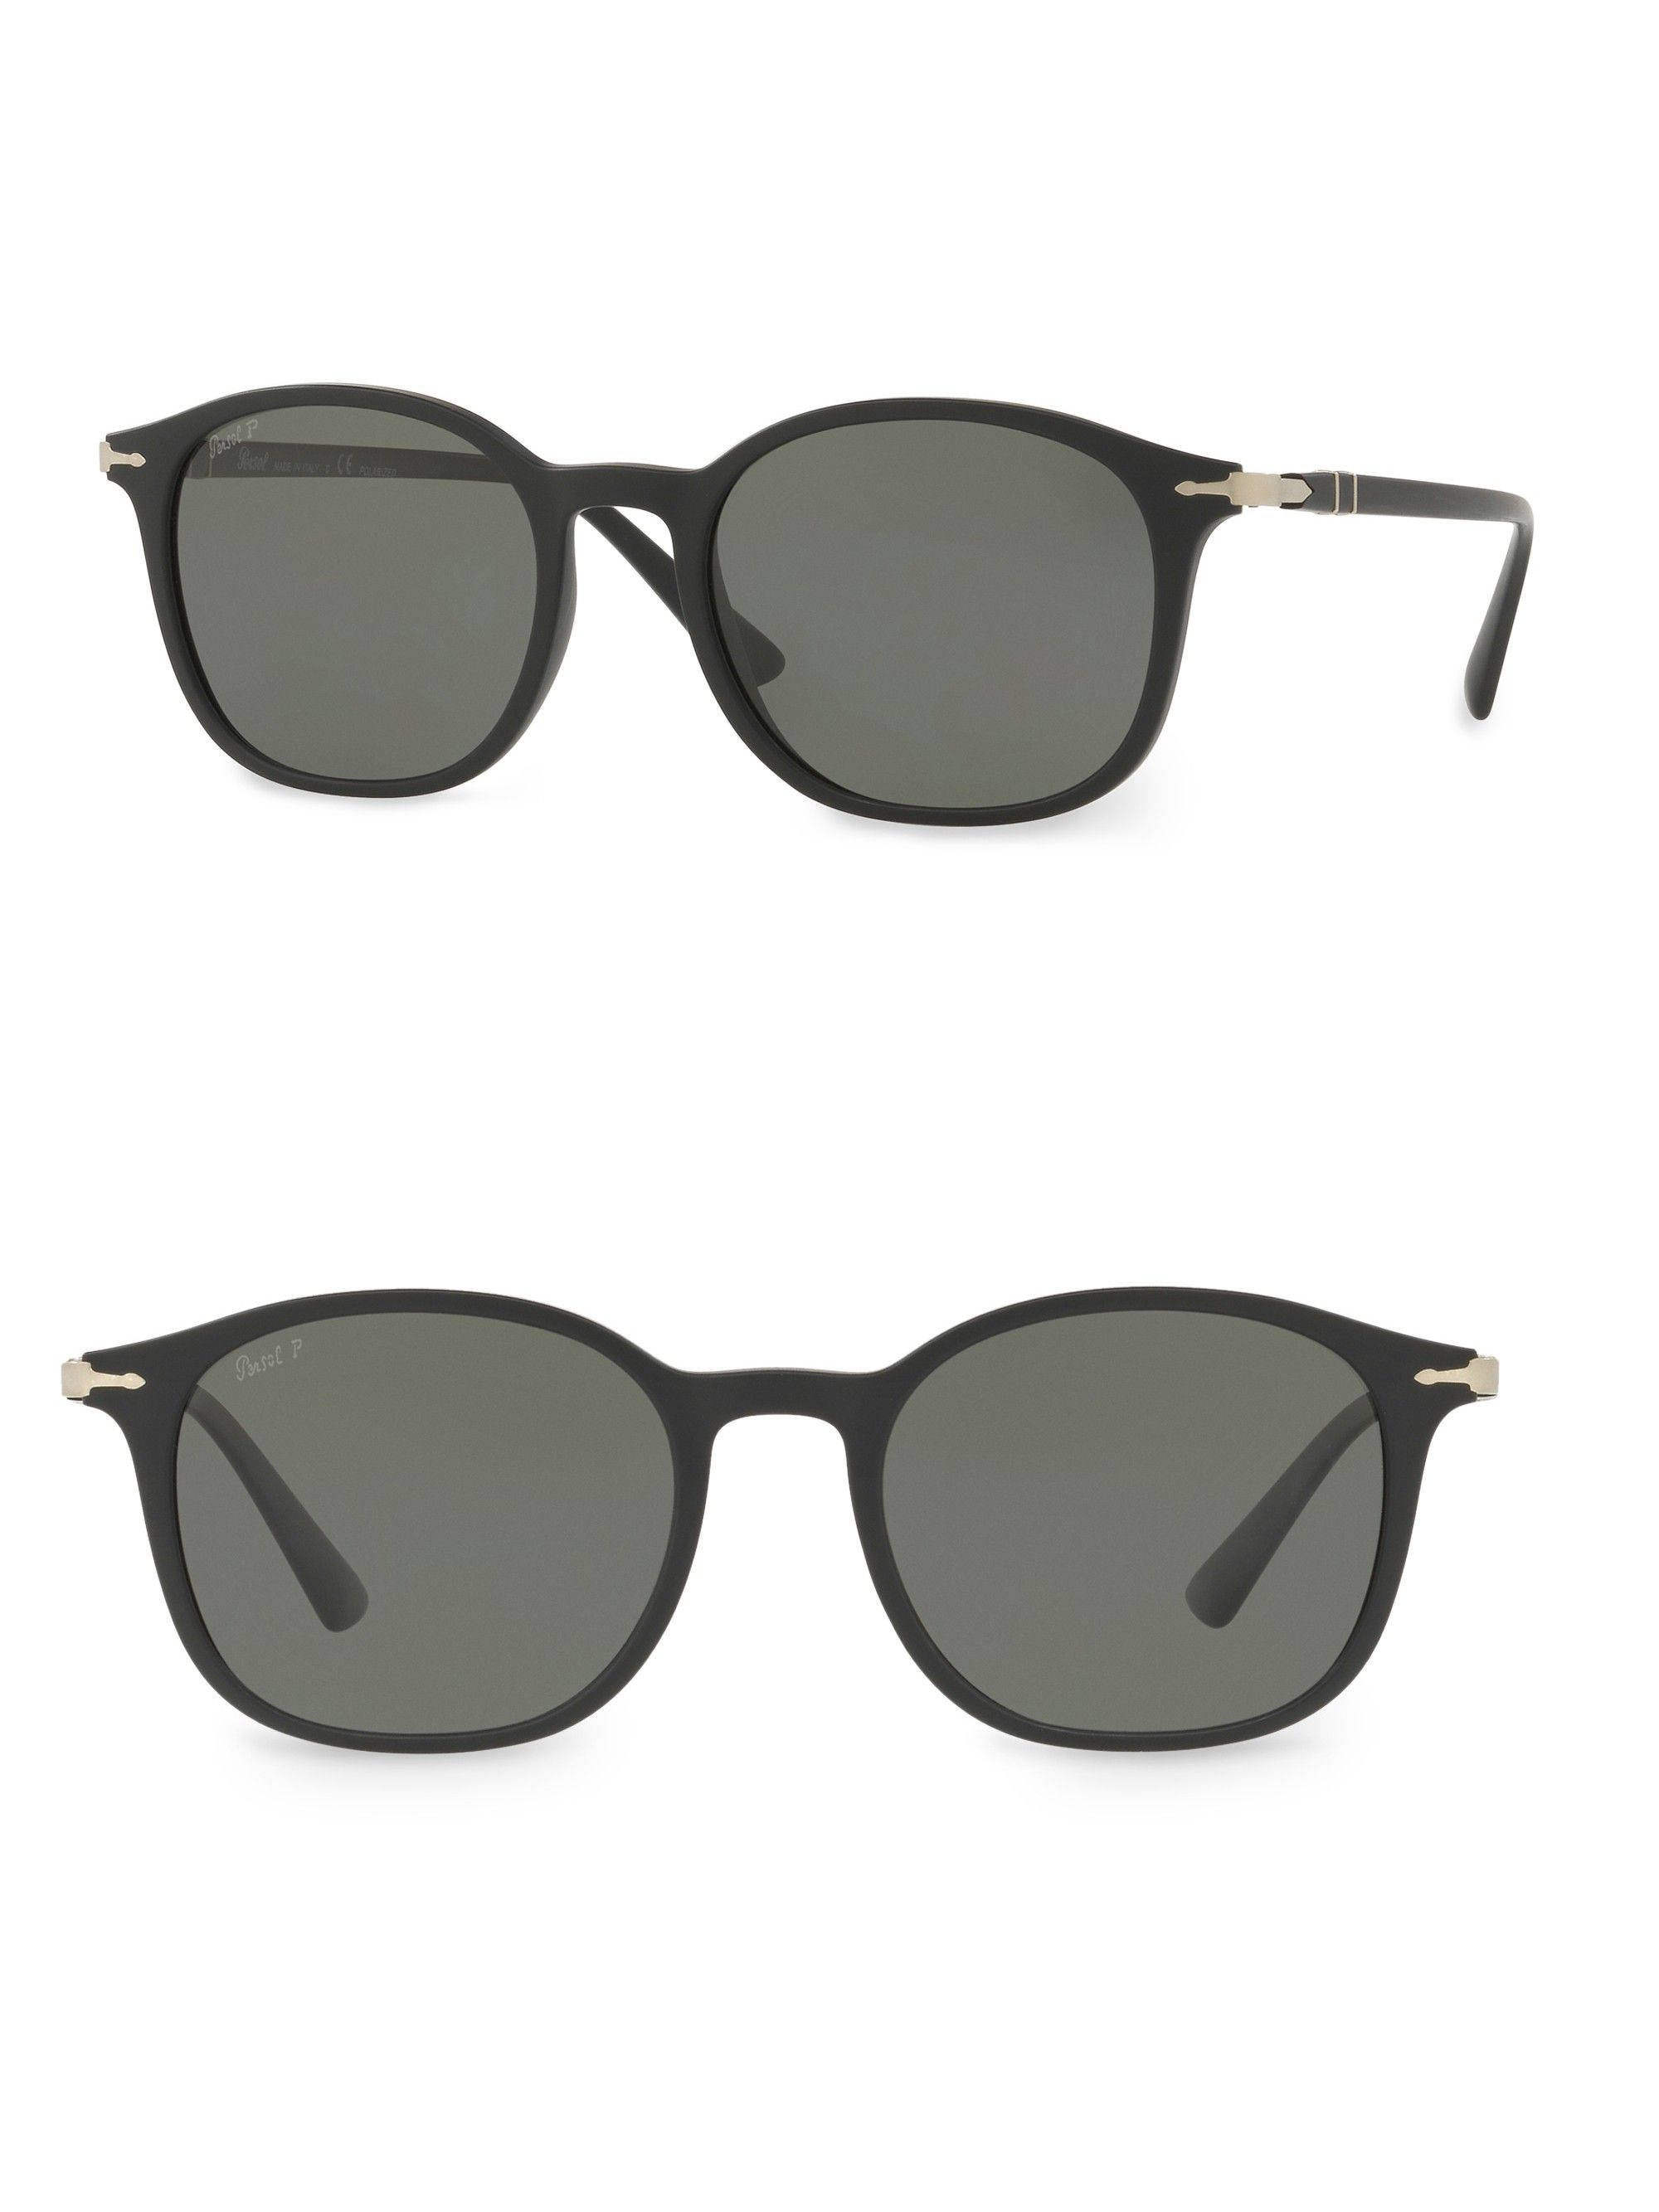 c5e9faefa3c2e Persol 54Mm Rectangle Sunglasses - Matte Black